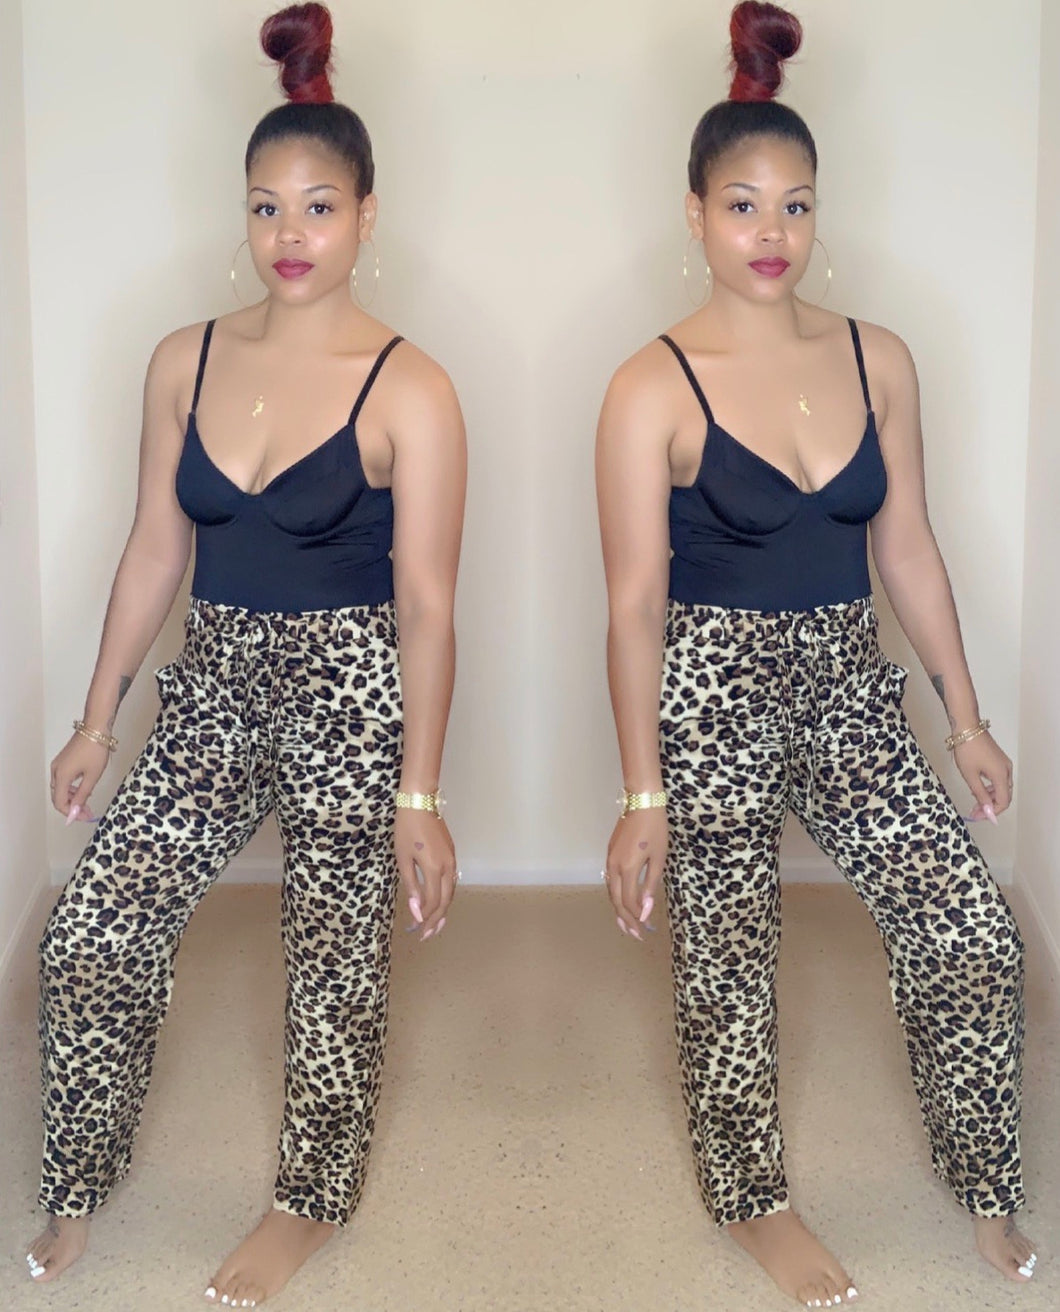 Leopard Things